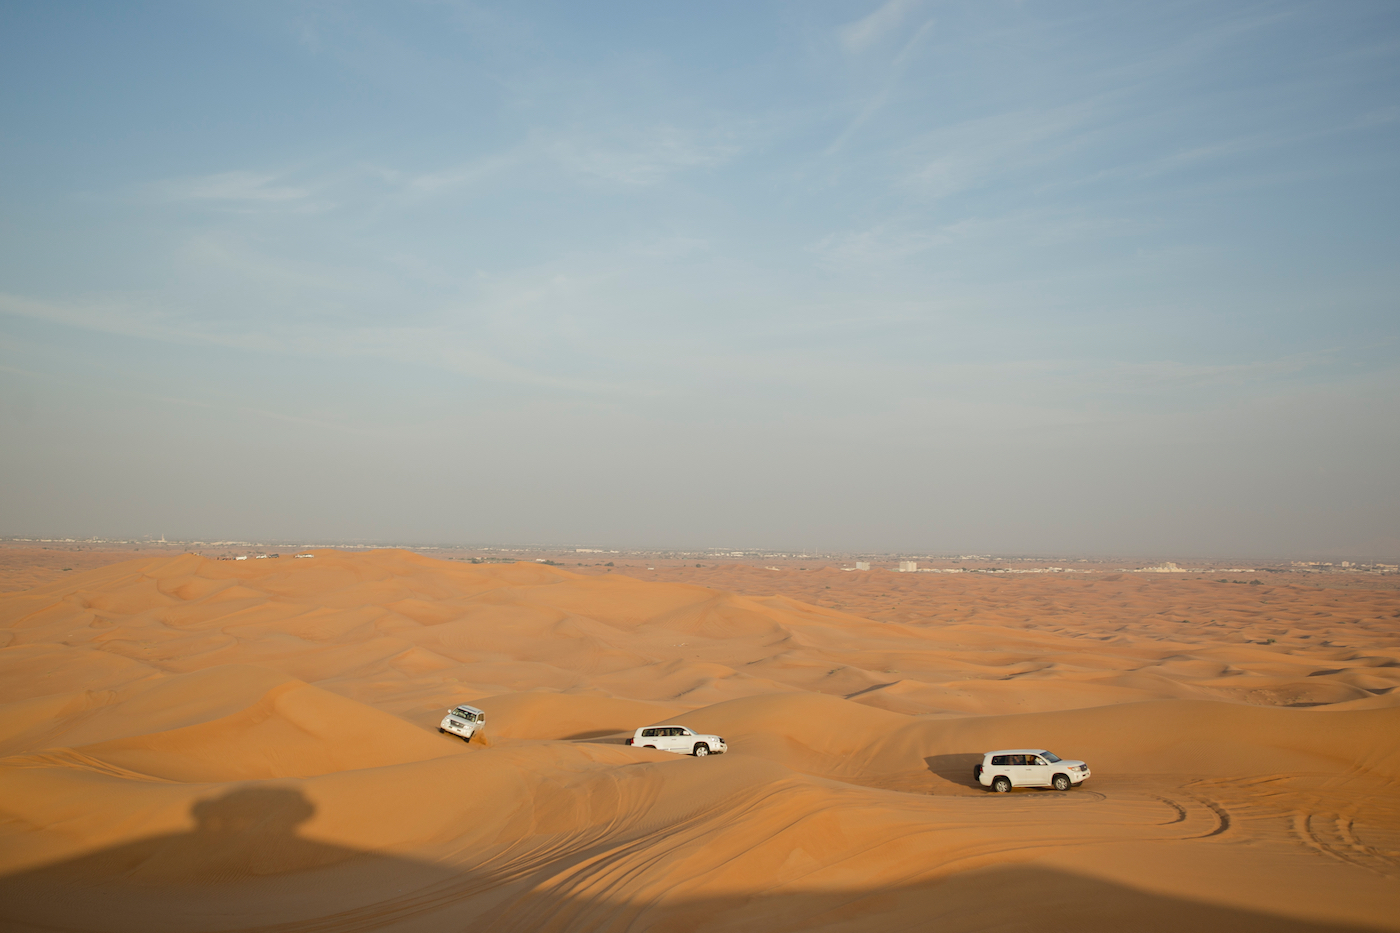 desert safari dubai _ desert dubai _ how to get to the desert dubai _ dubai desert safari